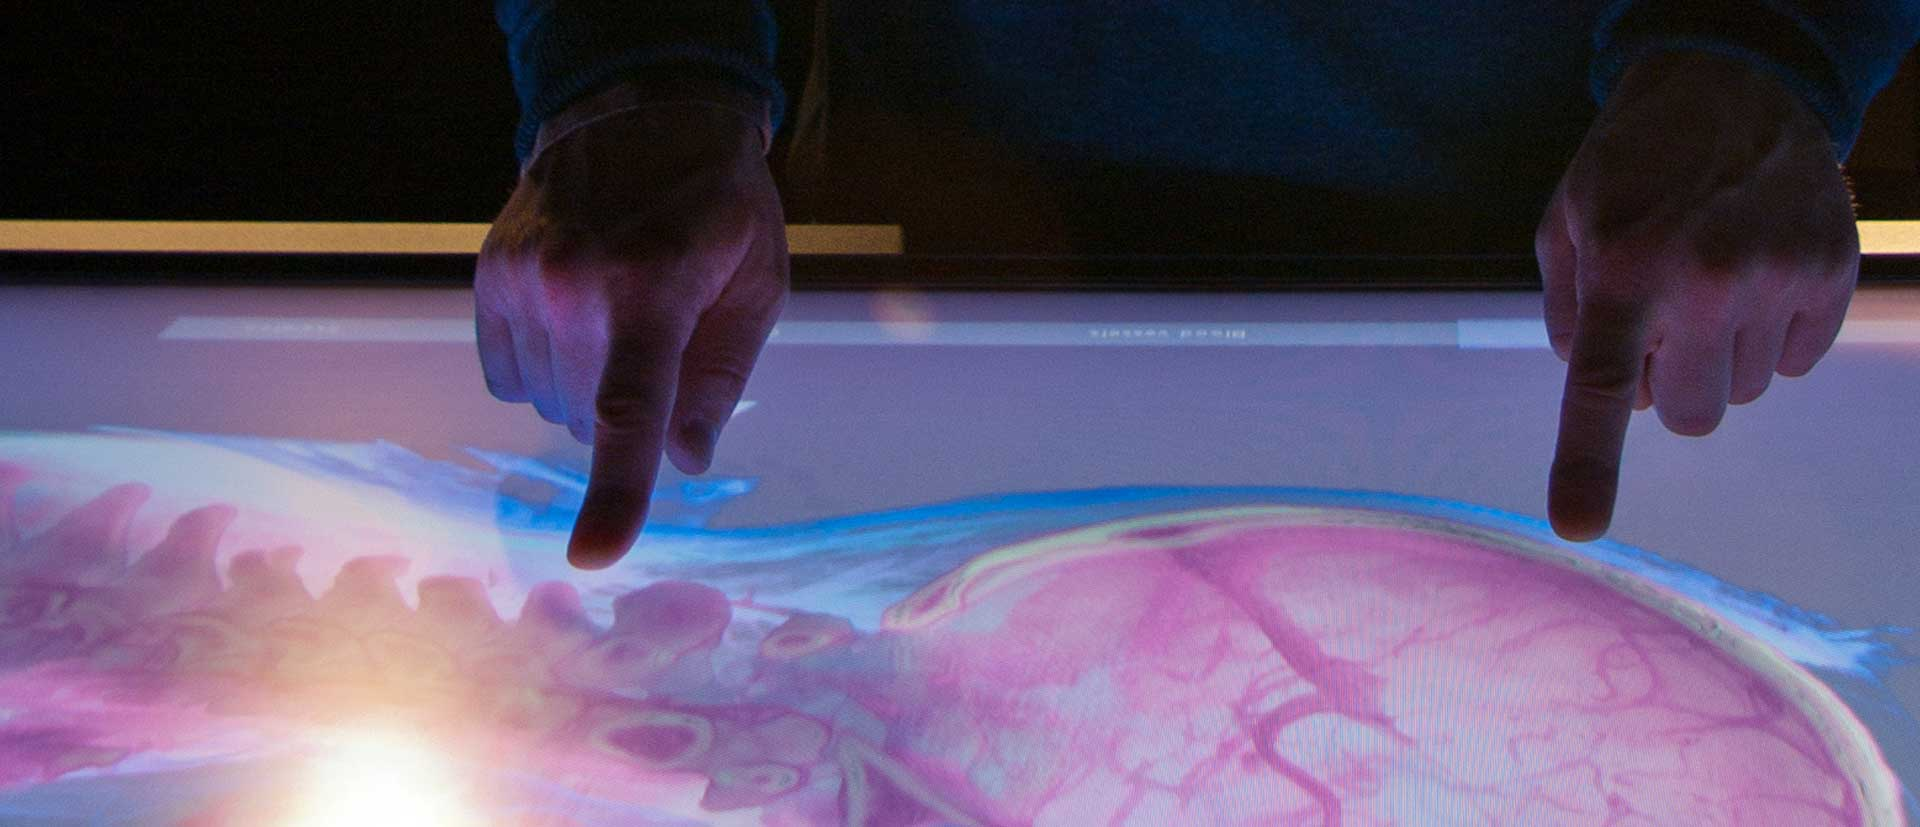 Fingers touching an interactive screen